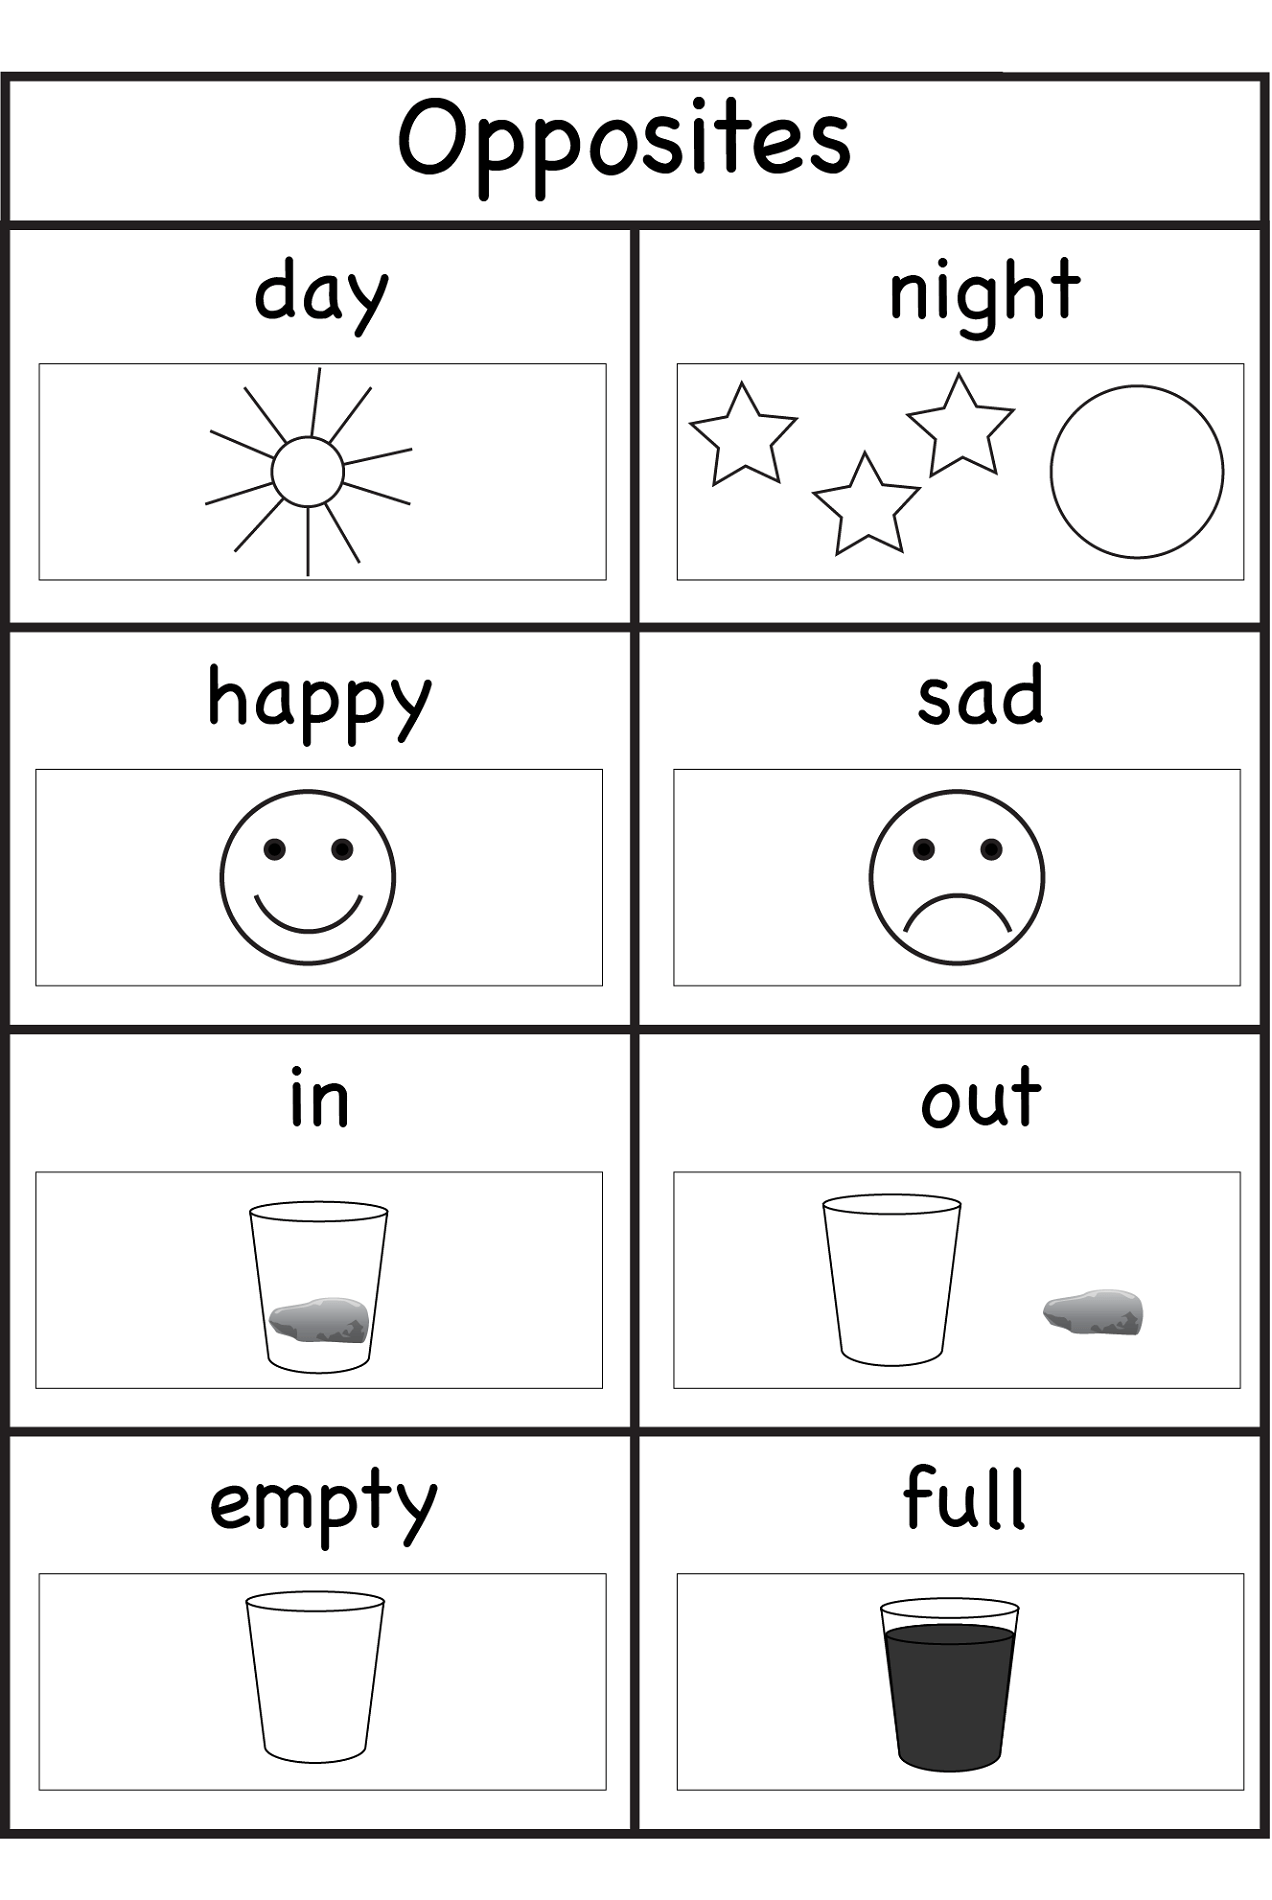 Worksheets For Three Year Olds For School Activity Shelter